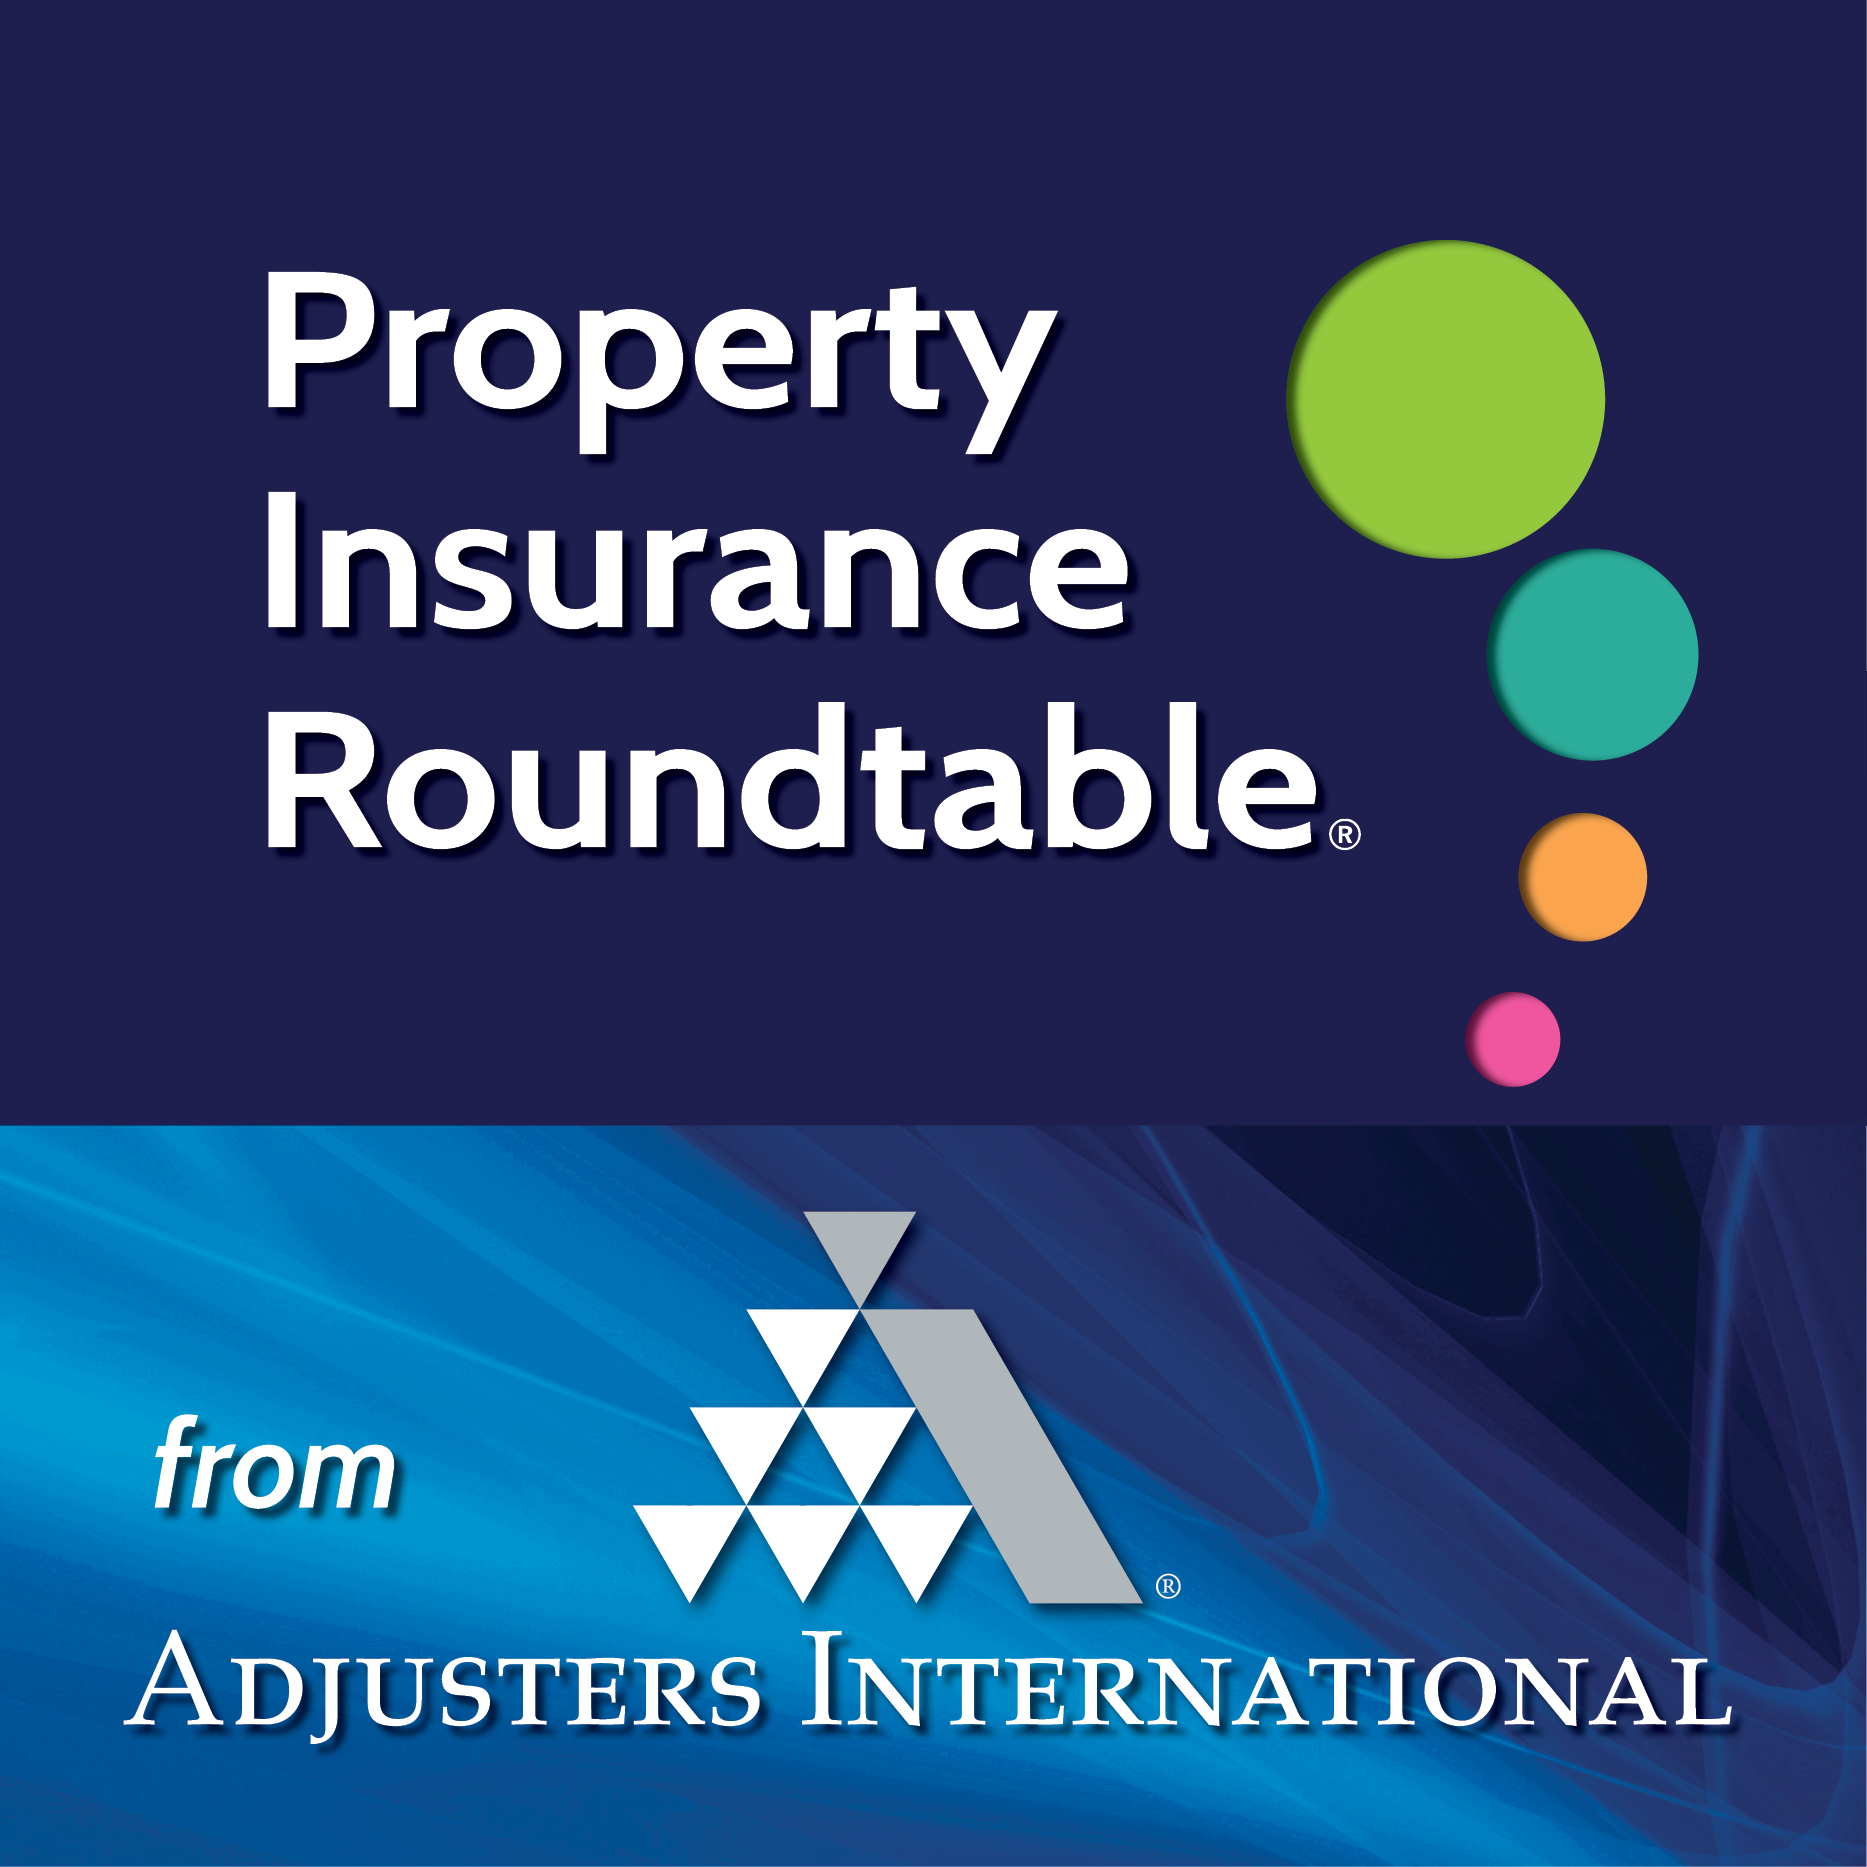 Property Insurance Roundtable